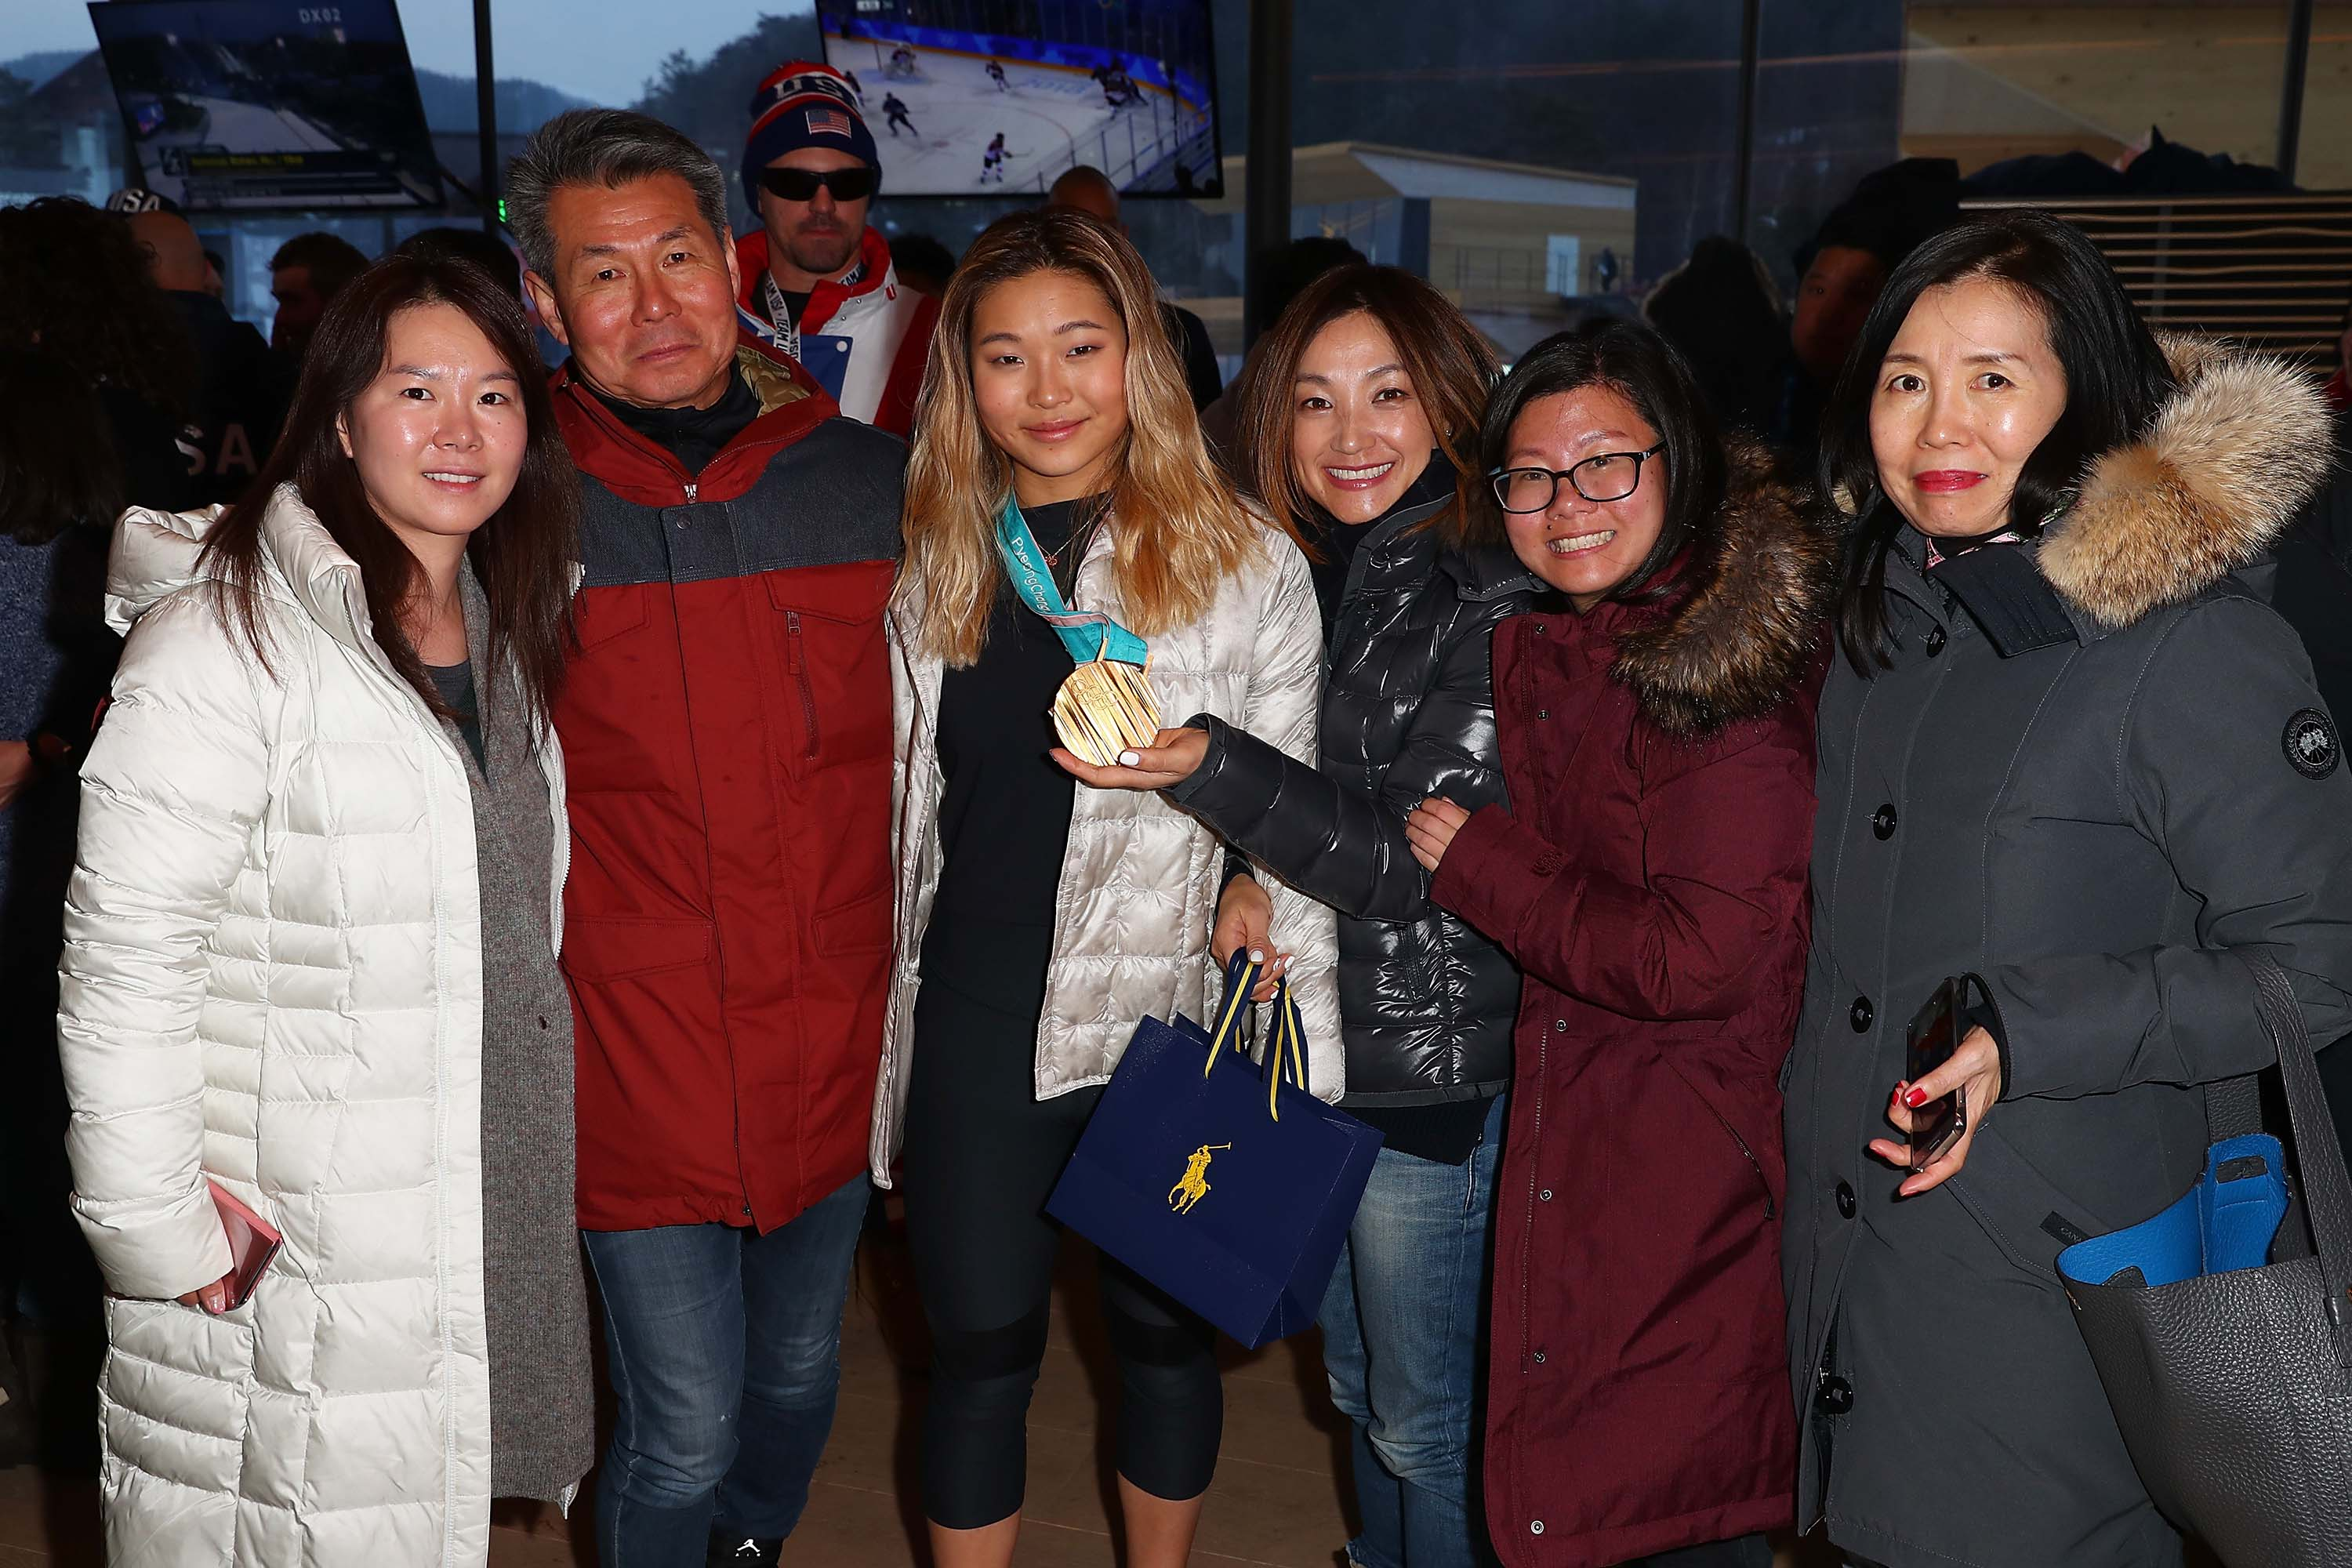 'Oh my gosh, are you that snowboarder?' Olympic gold medalist Chloe Kim goes to Princeton